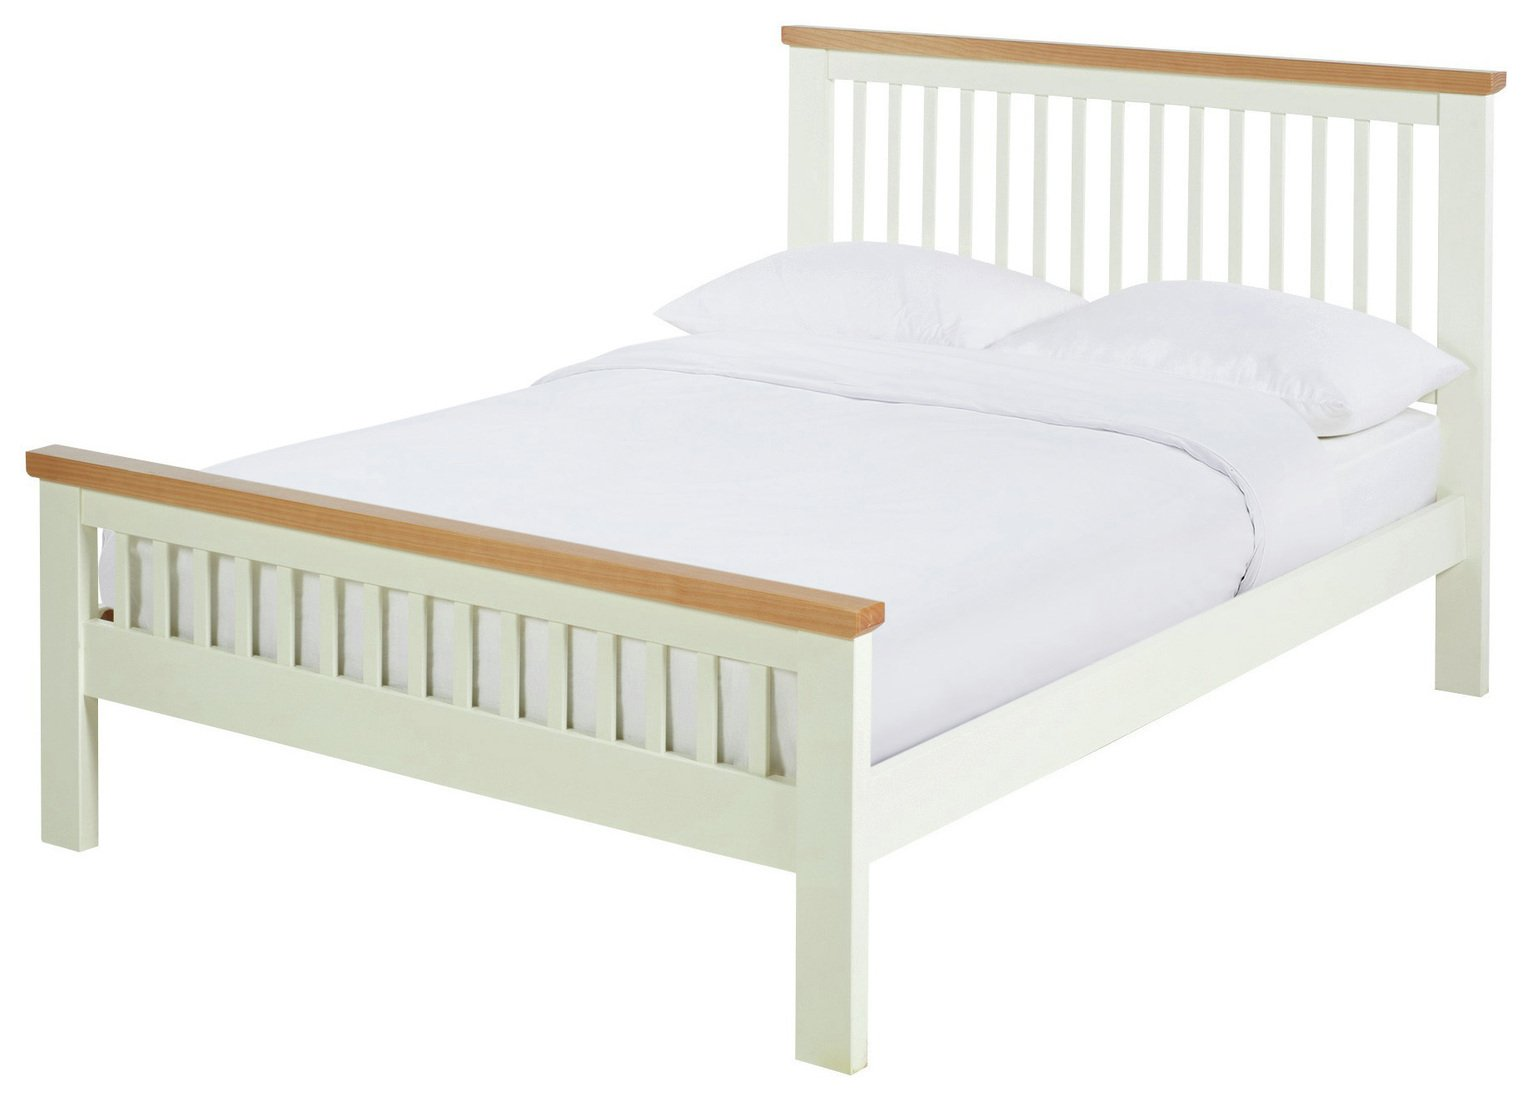 Argos Home Aubrey Superking Bed Frame - Two Tone Grey